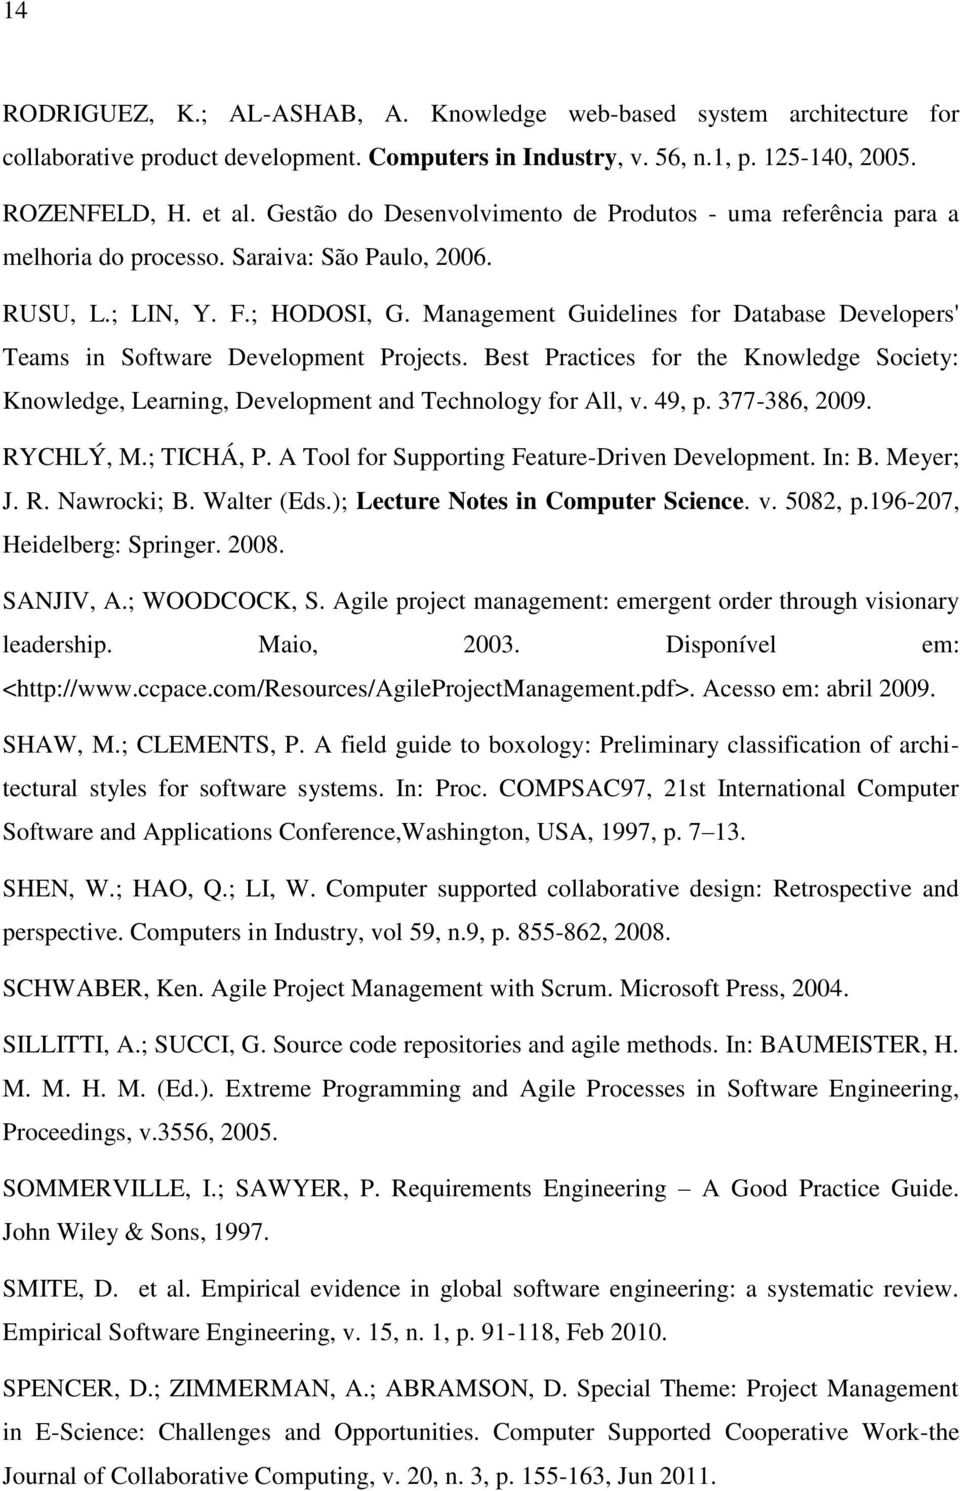 Management Guidelines for Database Developers' Teams in Software Development Projects. Best Practices for the Knowledge Society: Knowledge, Learning, Development and Technology for All, v. 49, p.